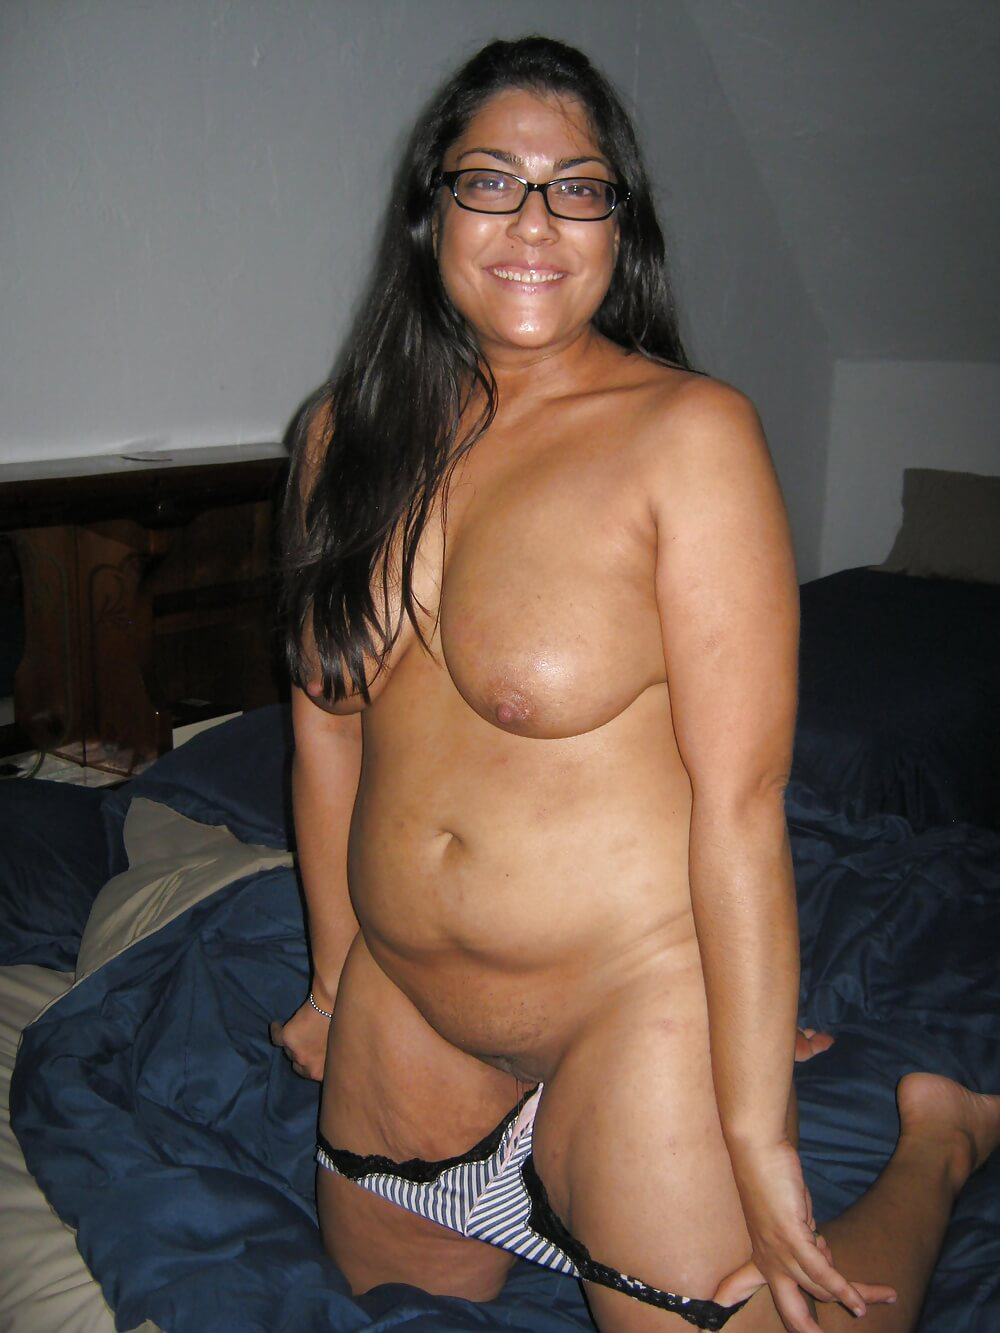 mexican girls hard core nude